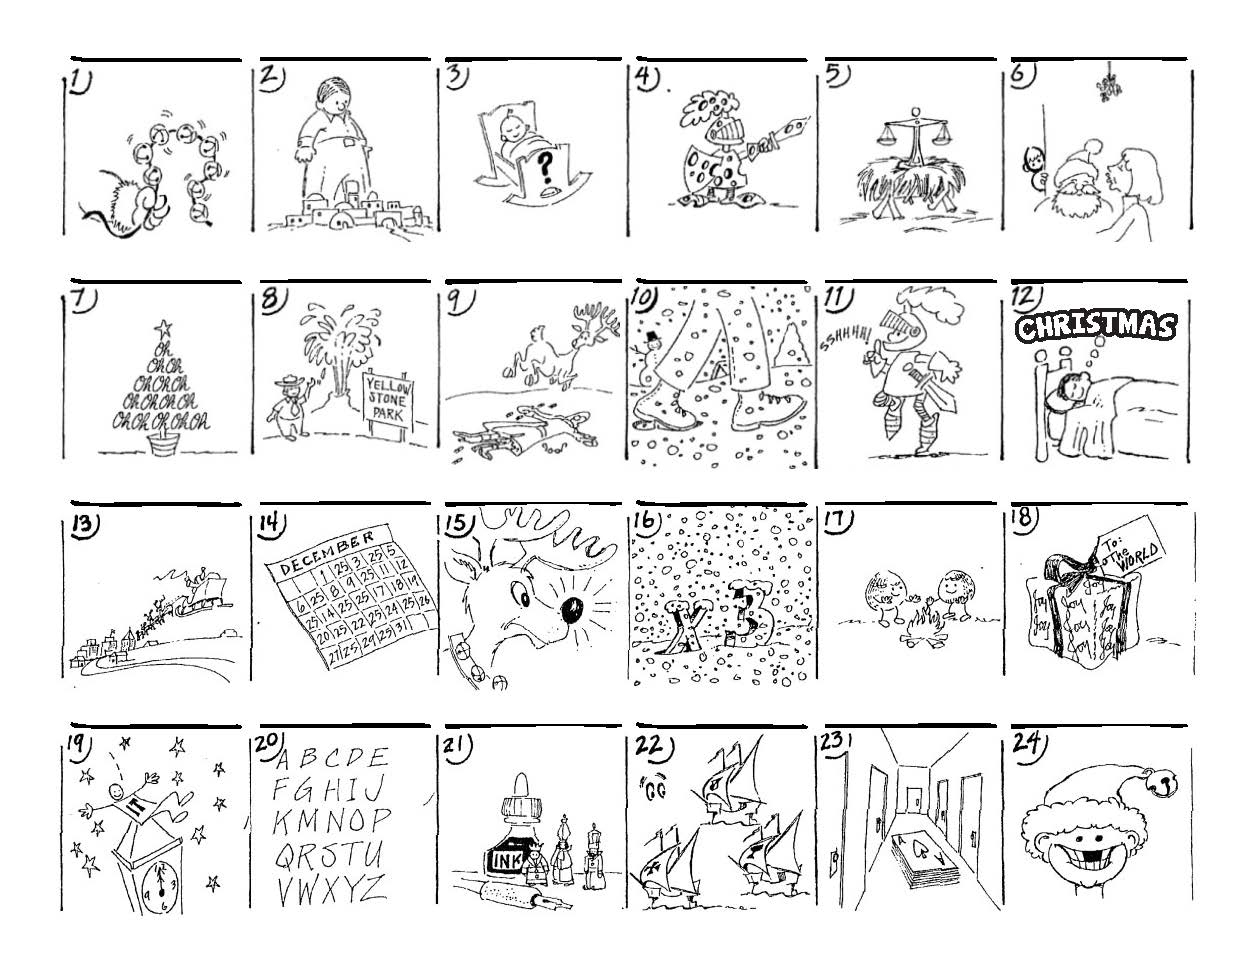 Christmas Carol Puzzles – The Button-Down Mind - Printable Christmas Rebus Puzzles